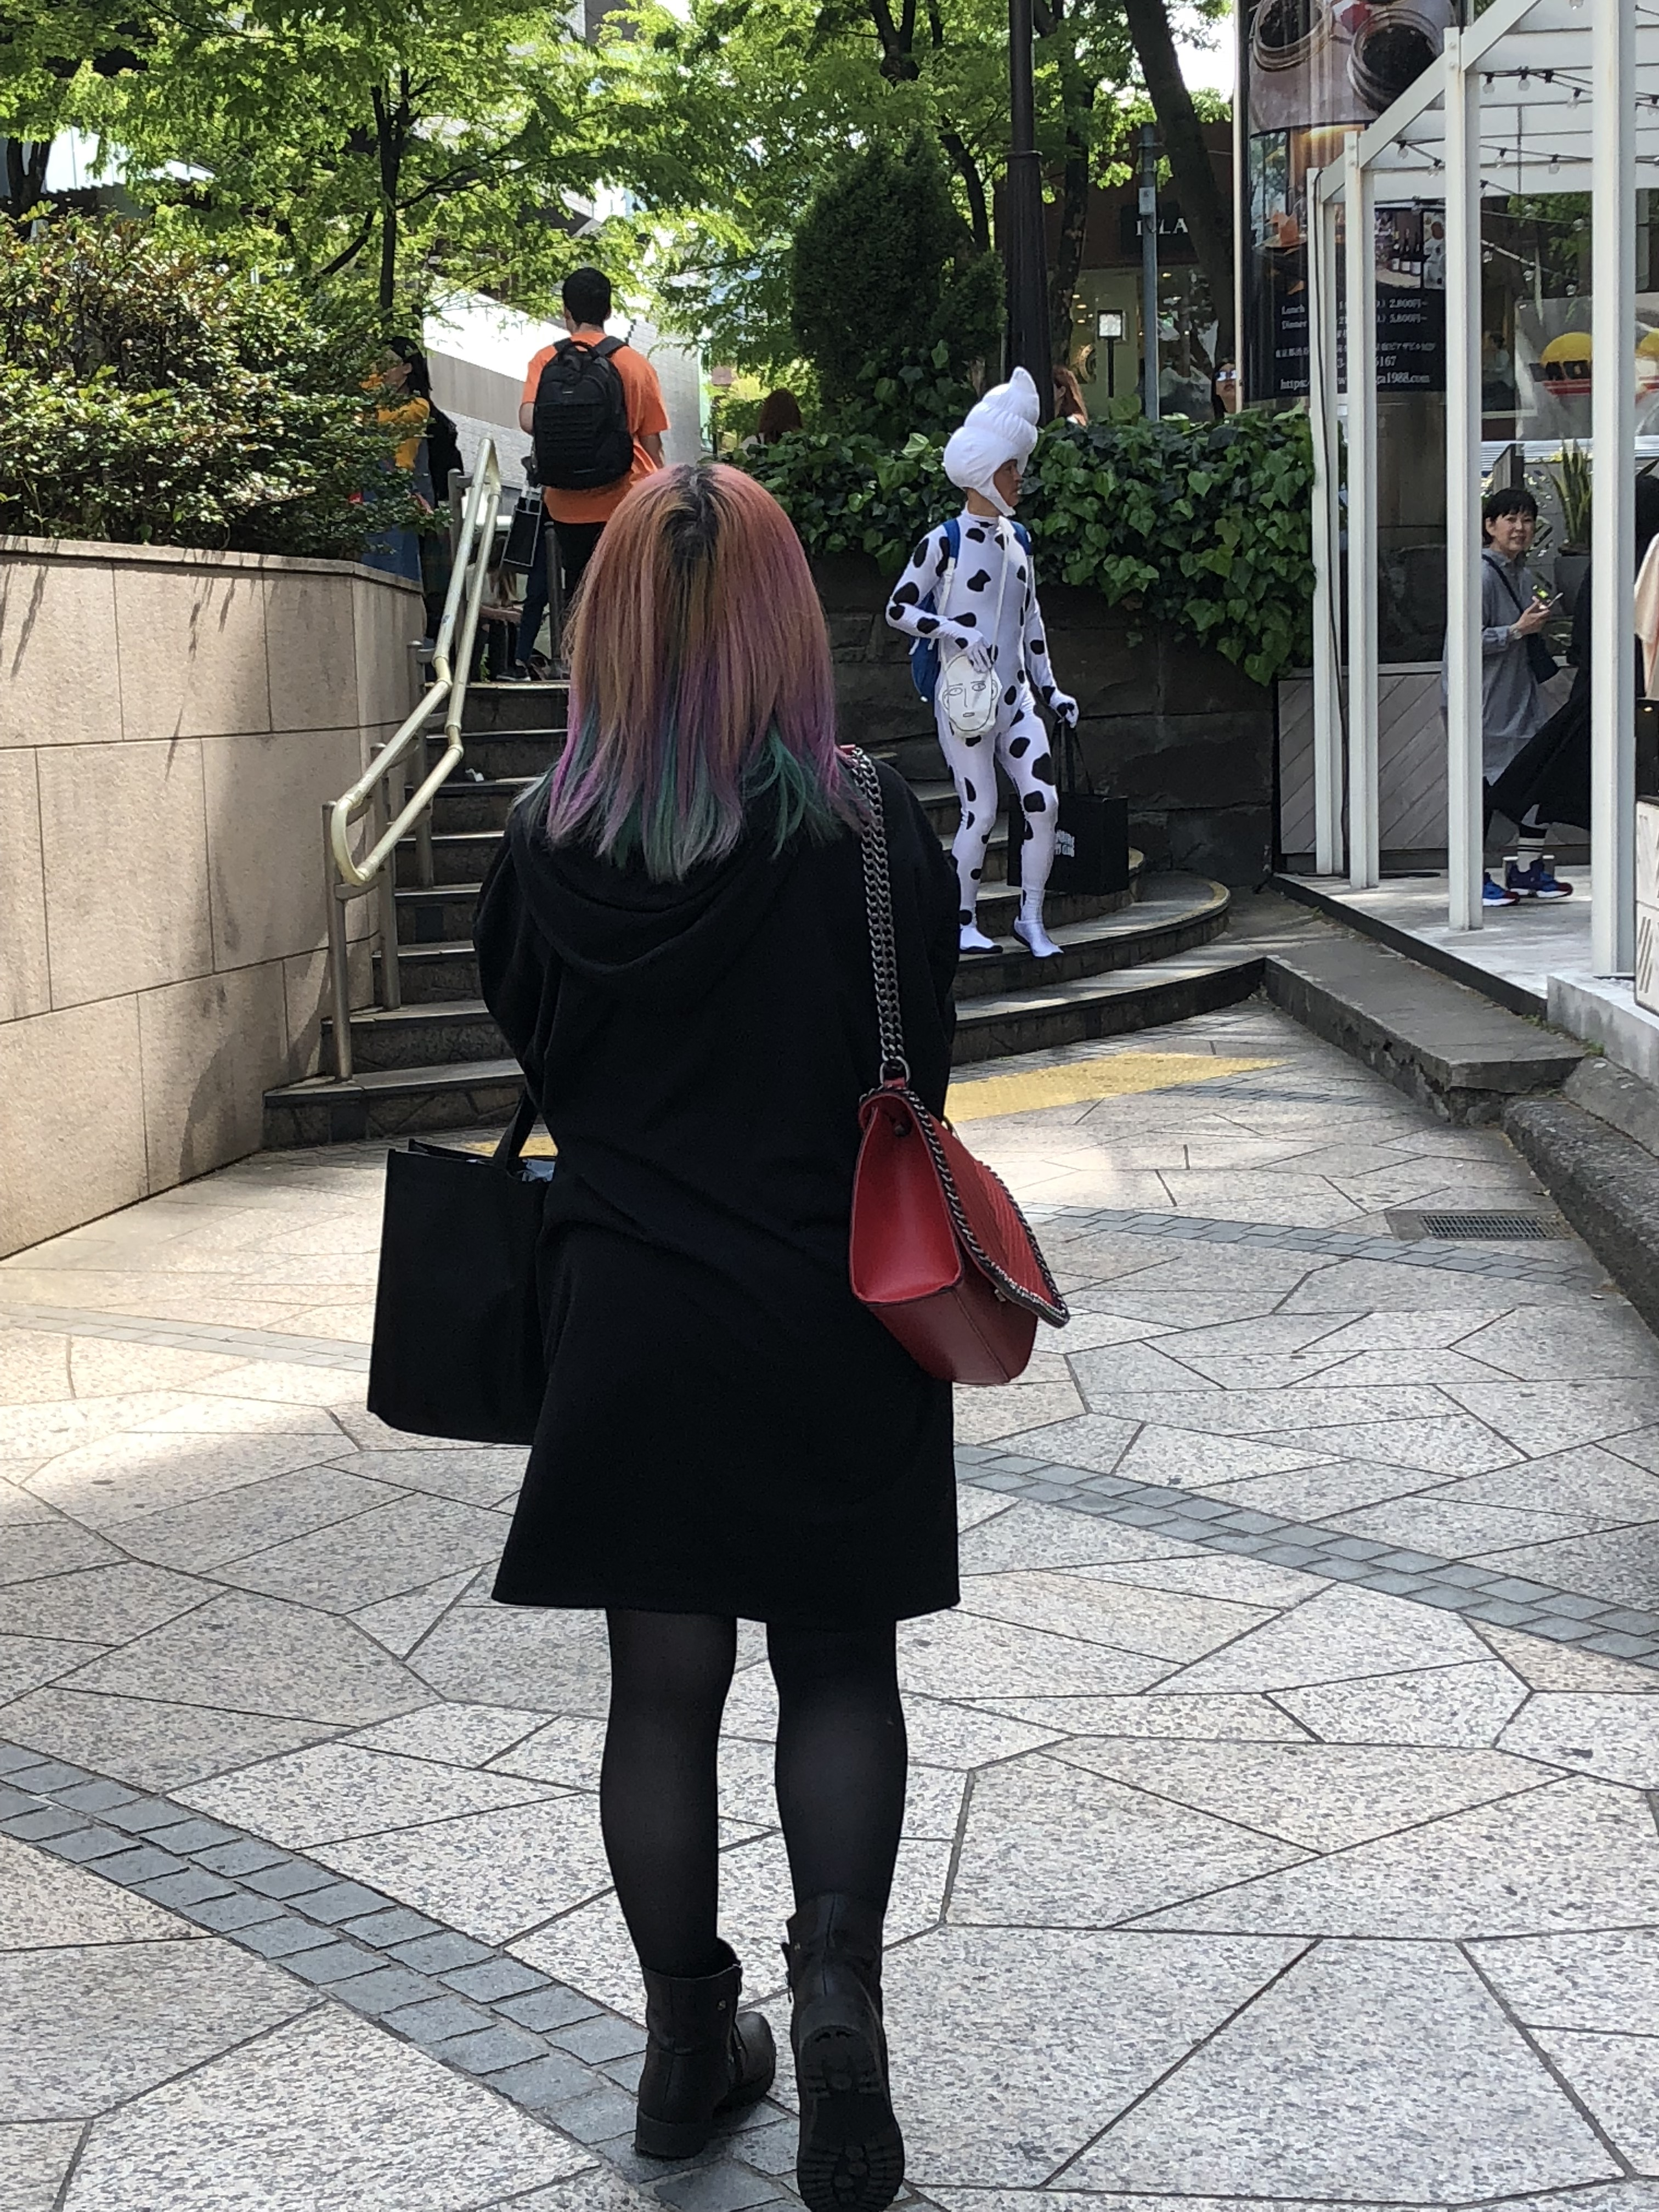 A girl with orange, blue and pink hair walking in Harajuku, with a man dressed in a lycra cow print onesie and an ice-cream swirl headpiece, in the background